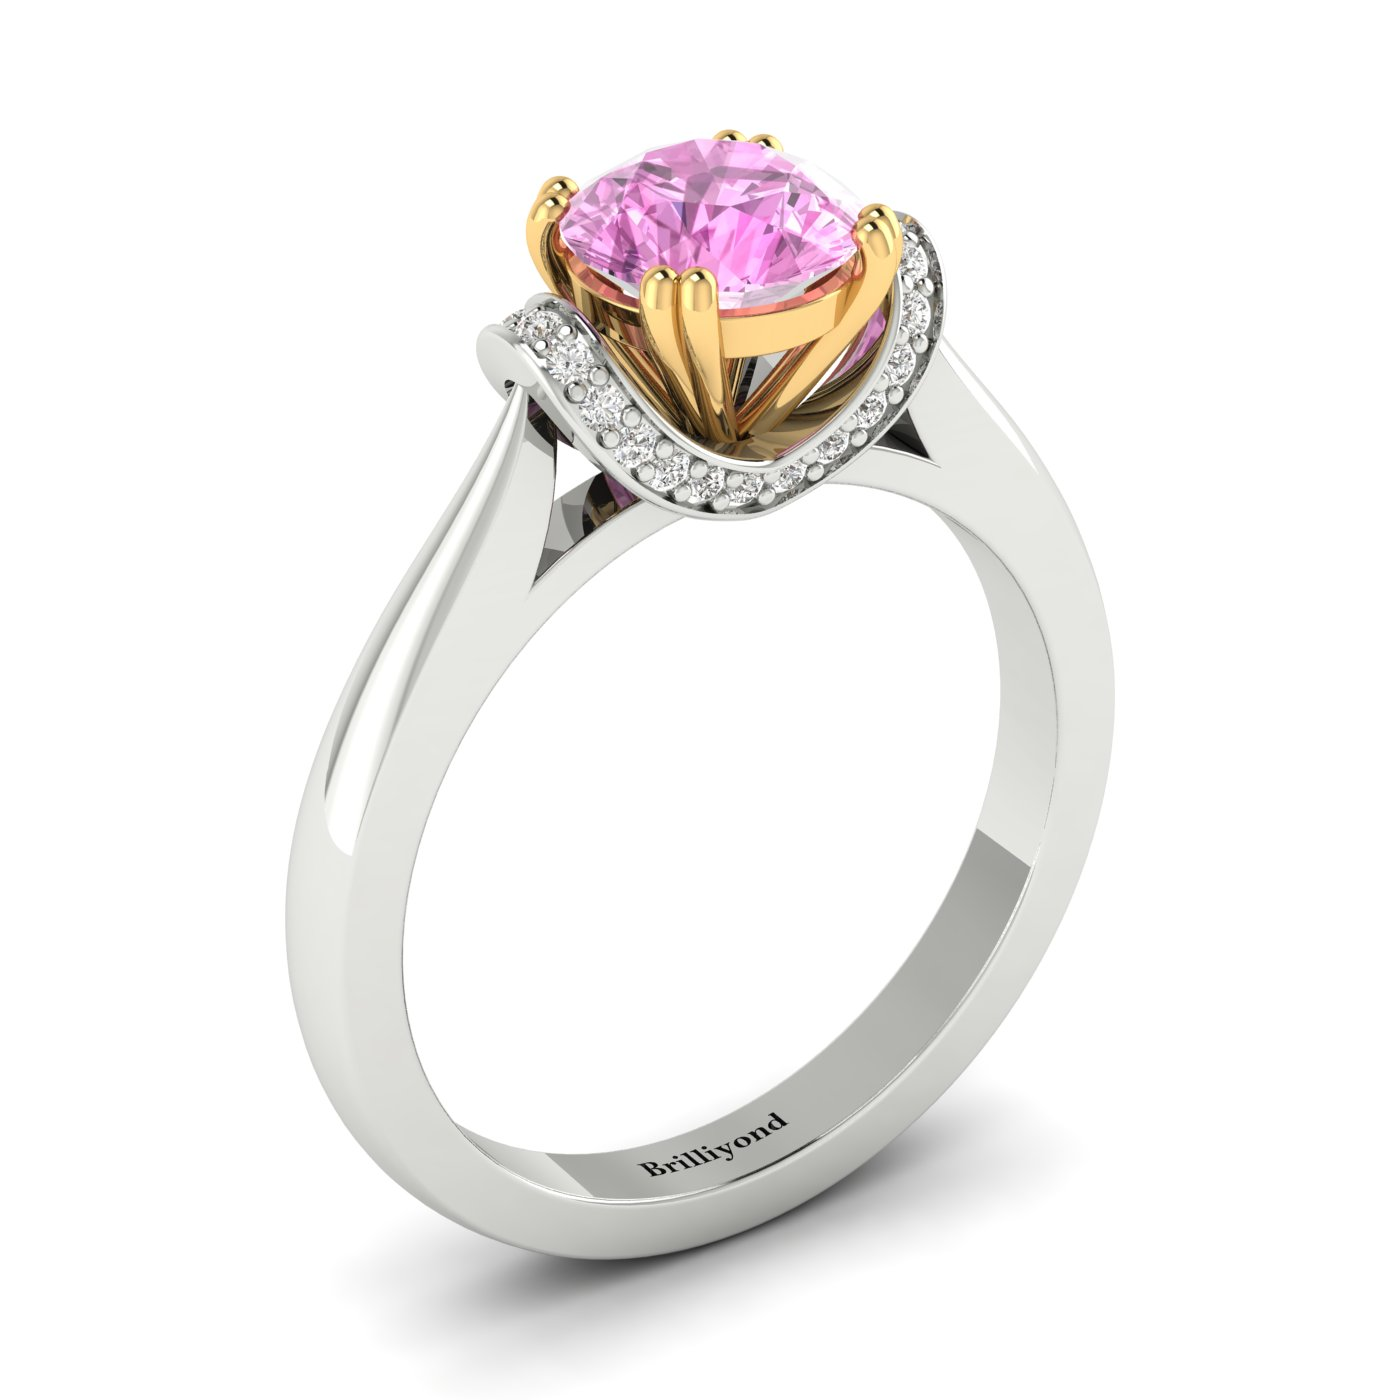 6mm Pink Sapphire Gemstone Handset on Two Tone 18k Gold Band